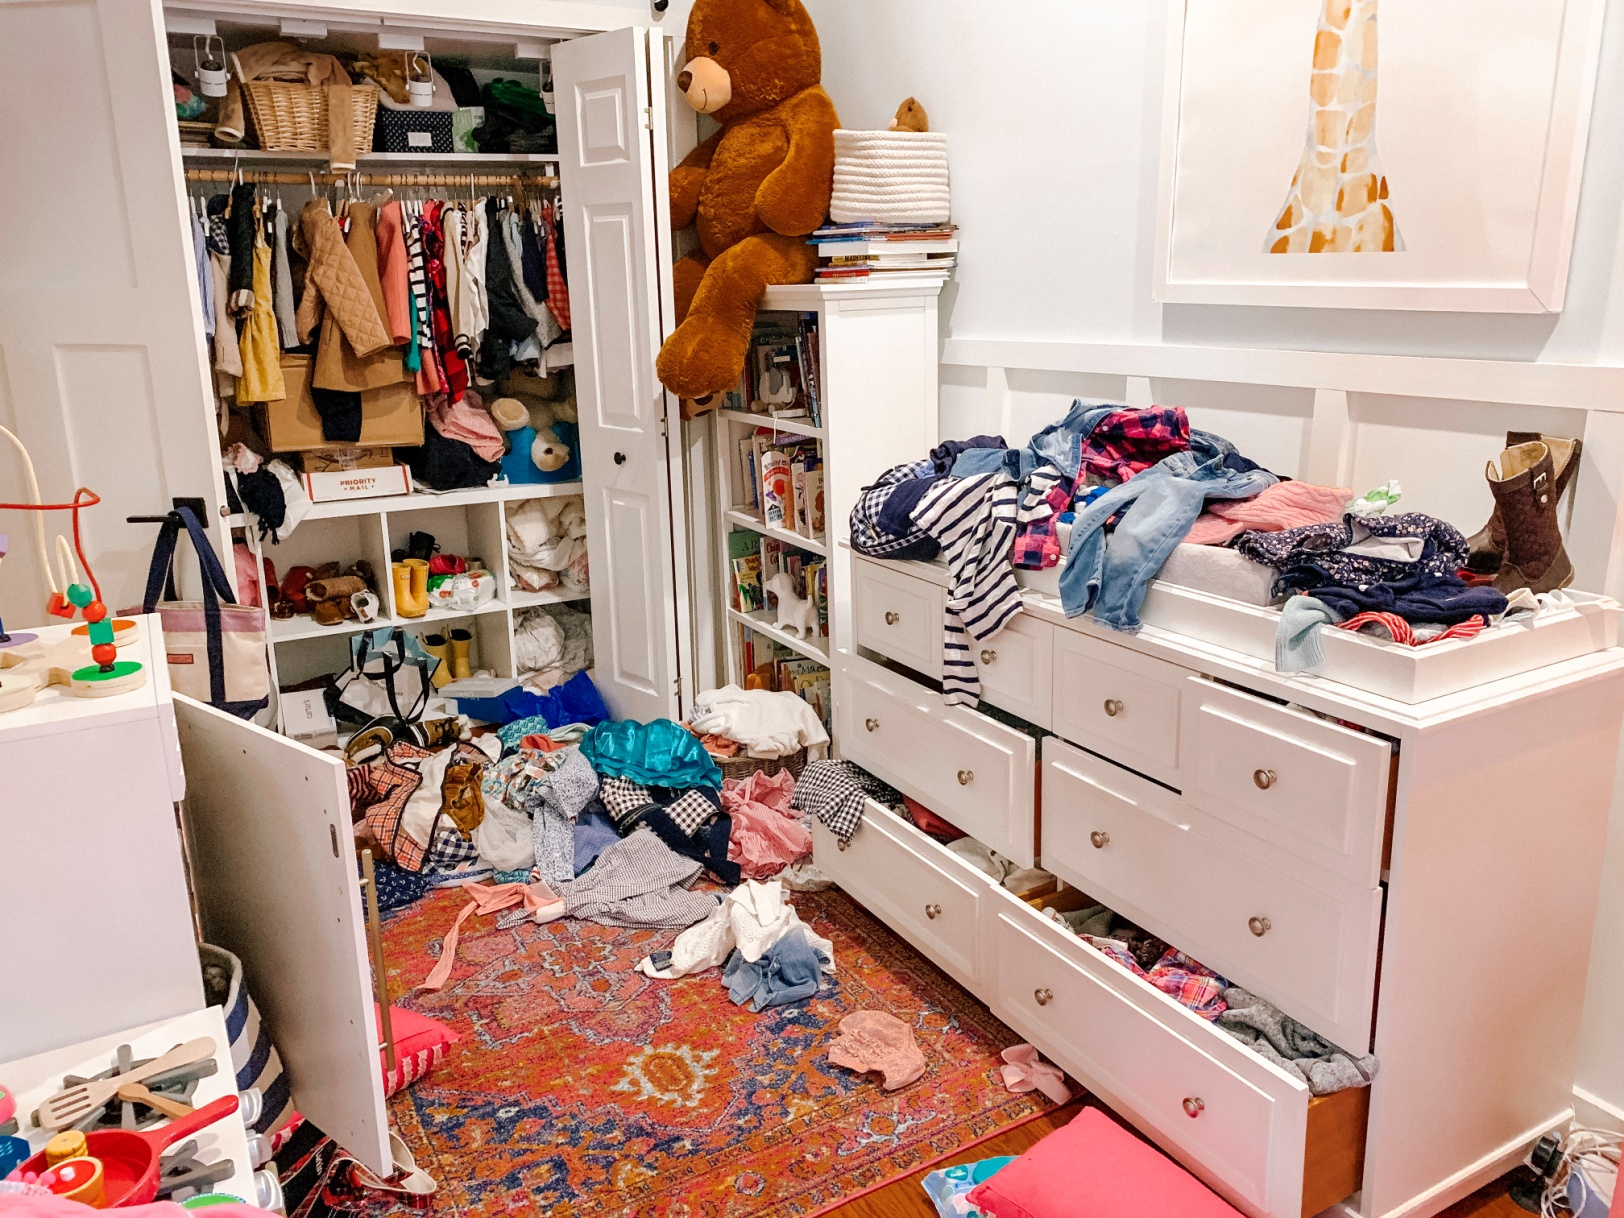 https://kellyinthecity.s3.amazonaws.com/wp-content/uploads/2019/03/KonMari-Before-and-After-Photos-kids-rooms.jpg